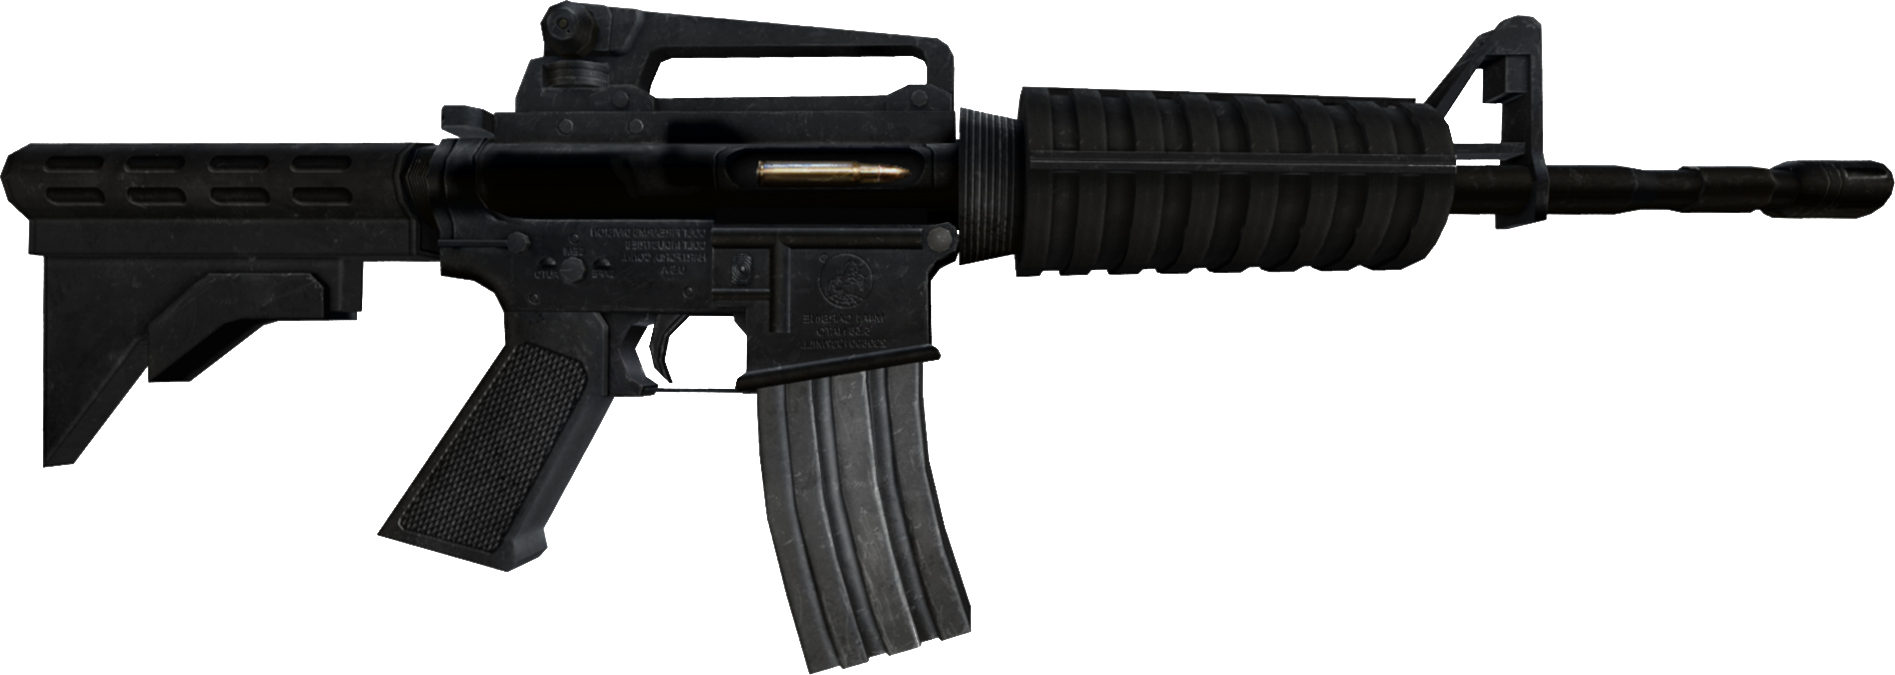 Image   Zewikia Weapon Assaultrifle M4A1 Css.png   Zombie Escape Wiki   Fandom Powered By Wikia - Weapon, Transparent background PNG HD thumbnail